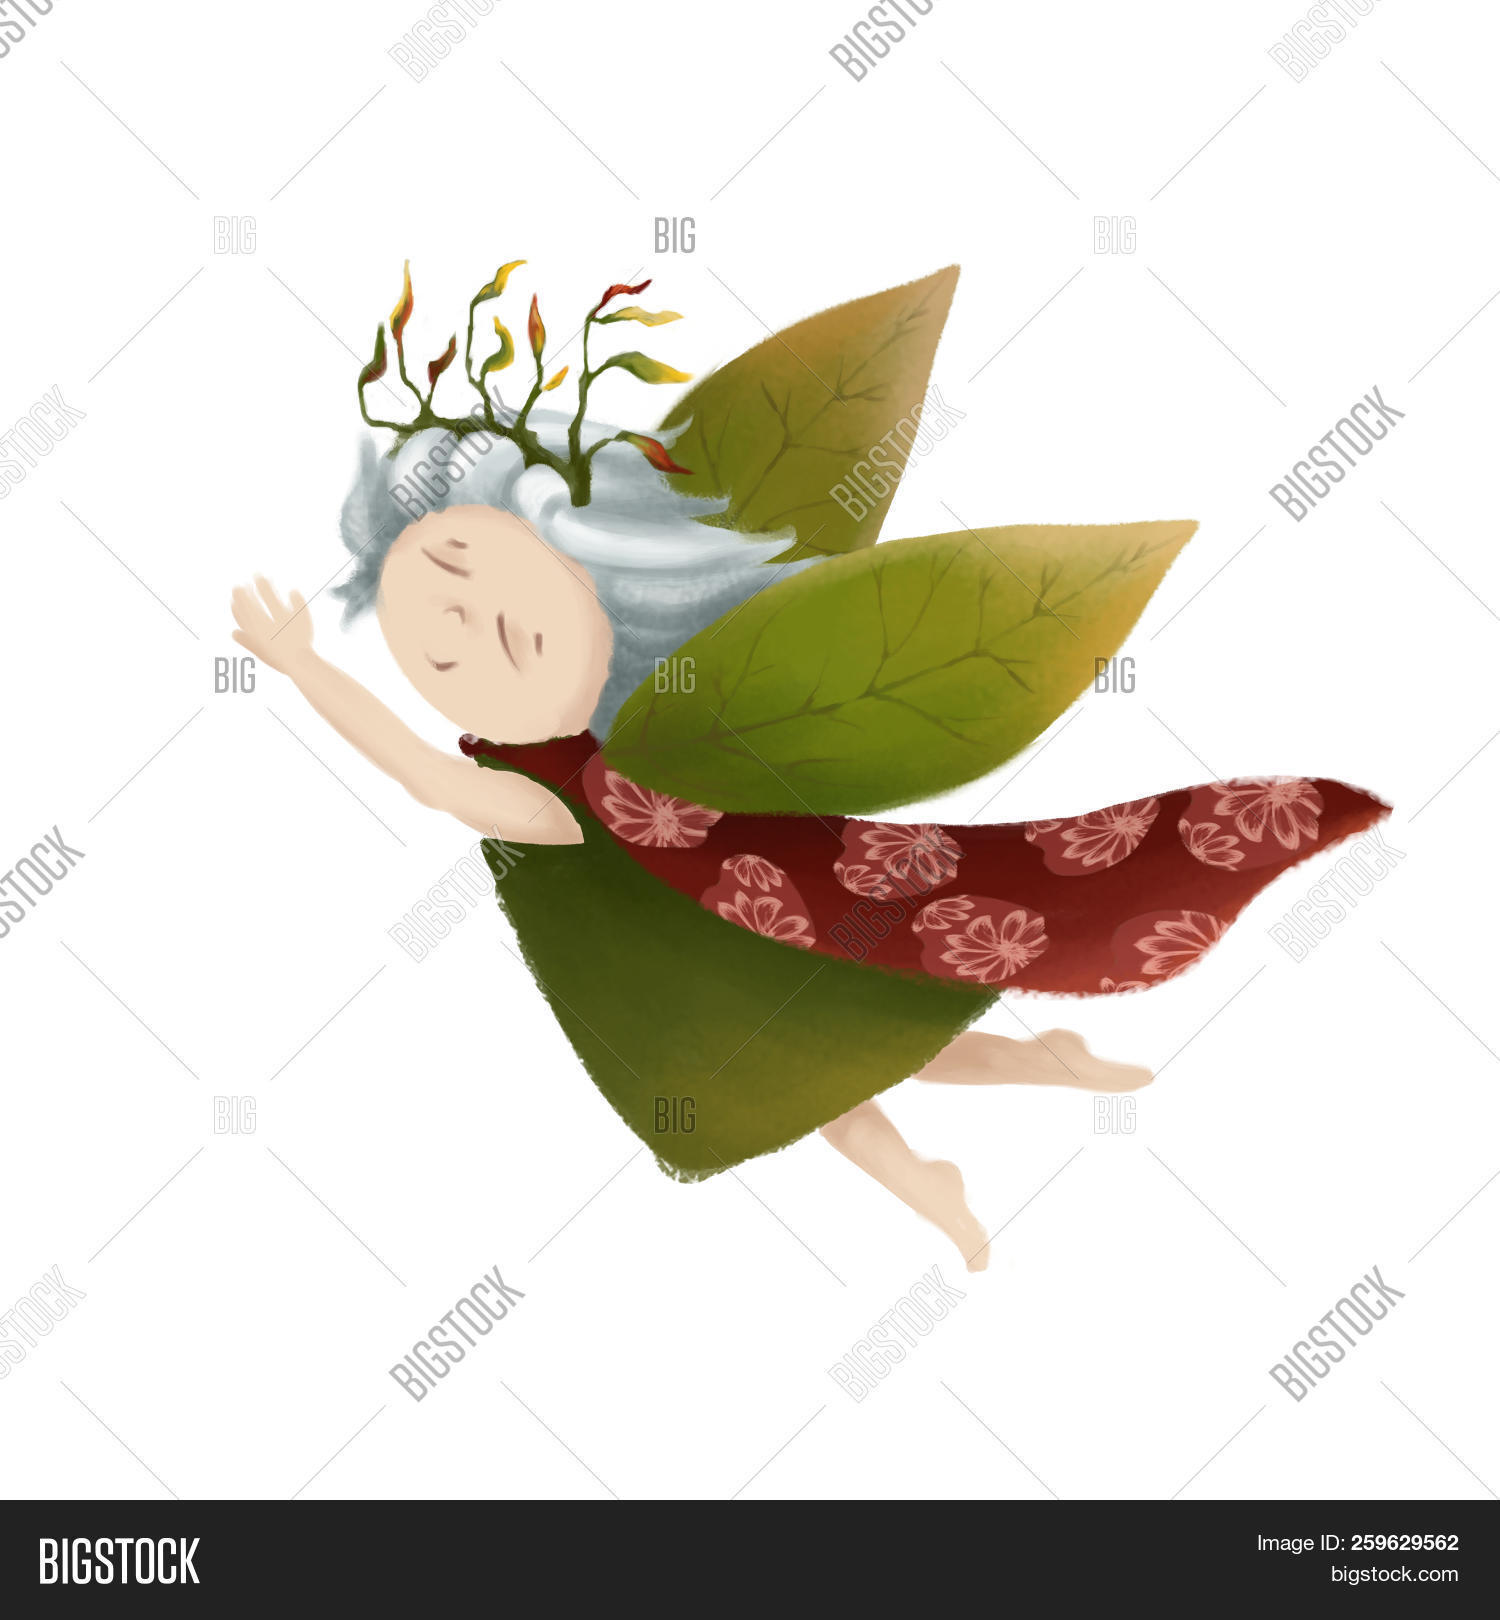 autumn,baby,barefoot,book,cartoon,character,child,childrens,cloak,cute,dress,elf,fairy,fairy-tale,flies,flight,flying,forest,girl,green,illustration,leaf,magic,nymph,person,princess,raincoat,red,sorceress,spring,summer,tale,wings